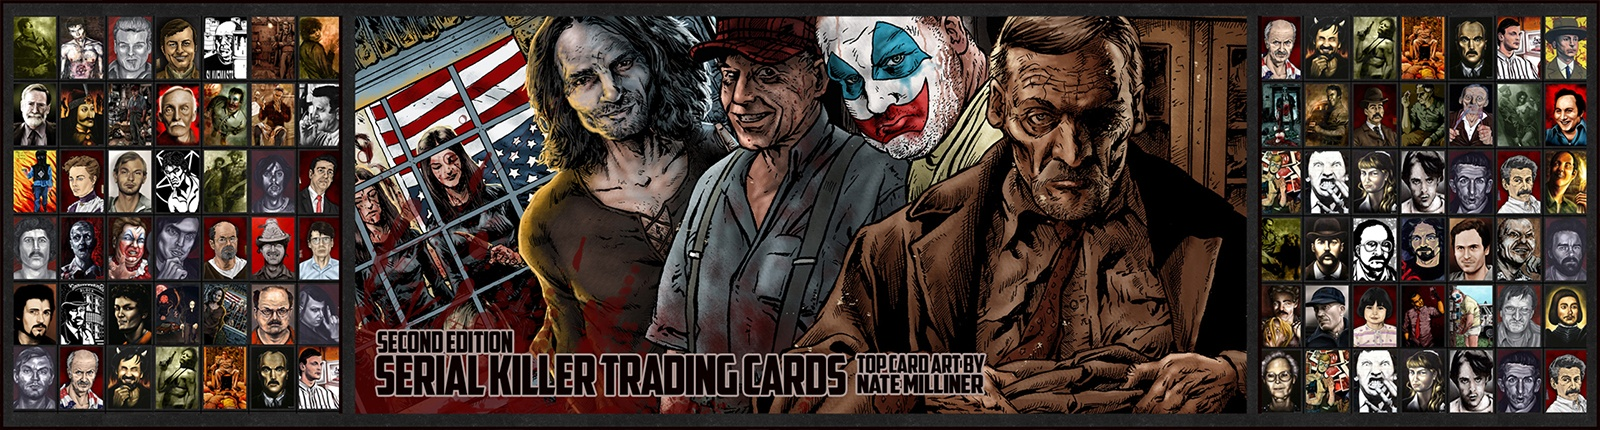 THE SERIAL KILLER TRADING CARDS